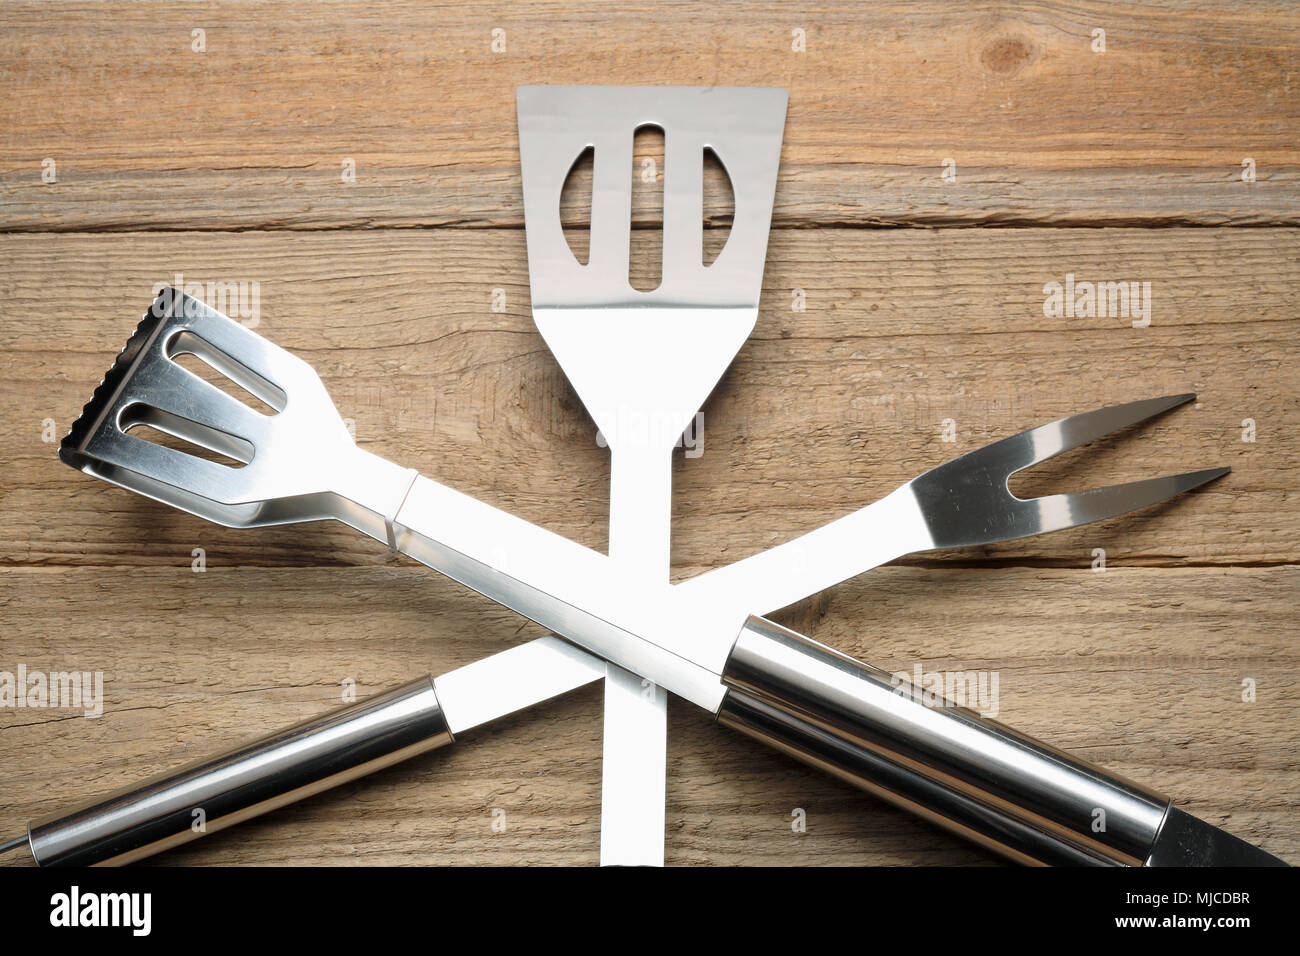 Kitchen Utensils on Wooden Background - Stock Image